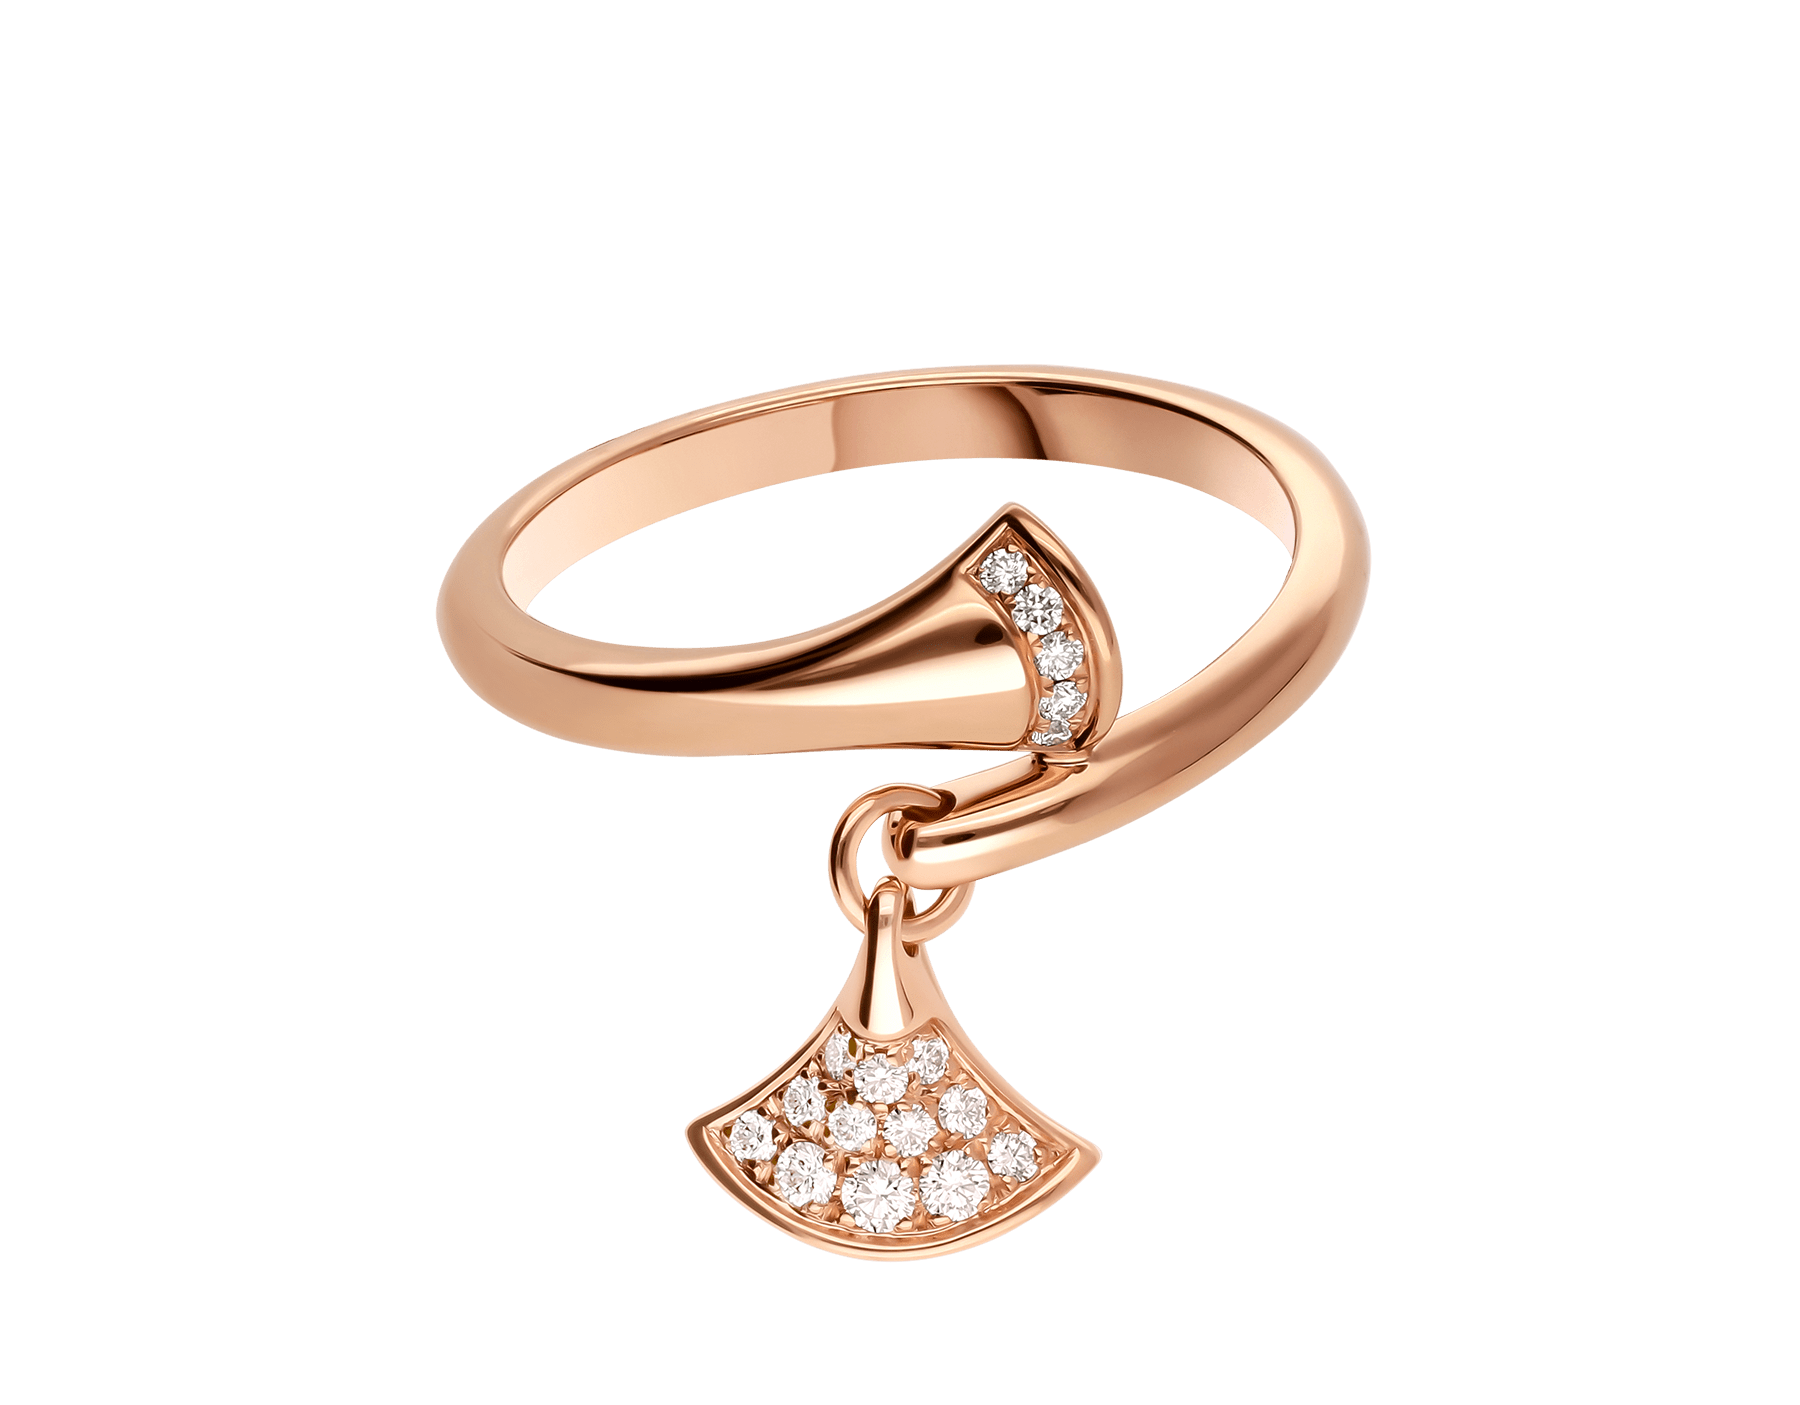 DIVAS' DREAM ring in 18 kt rose gold, set with pavé diamonds. AN857373 image 2